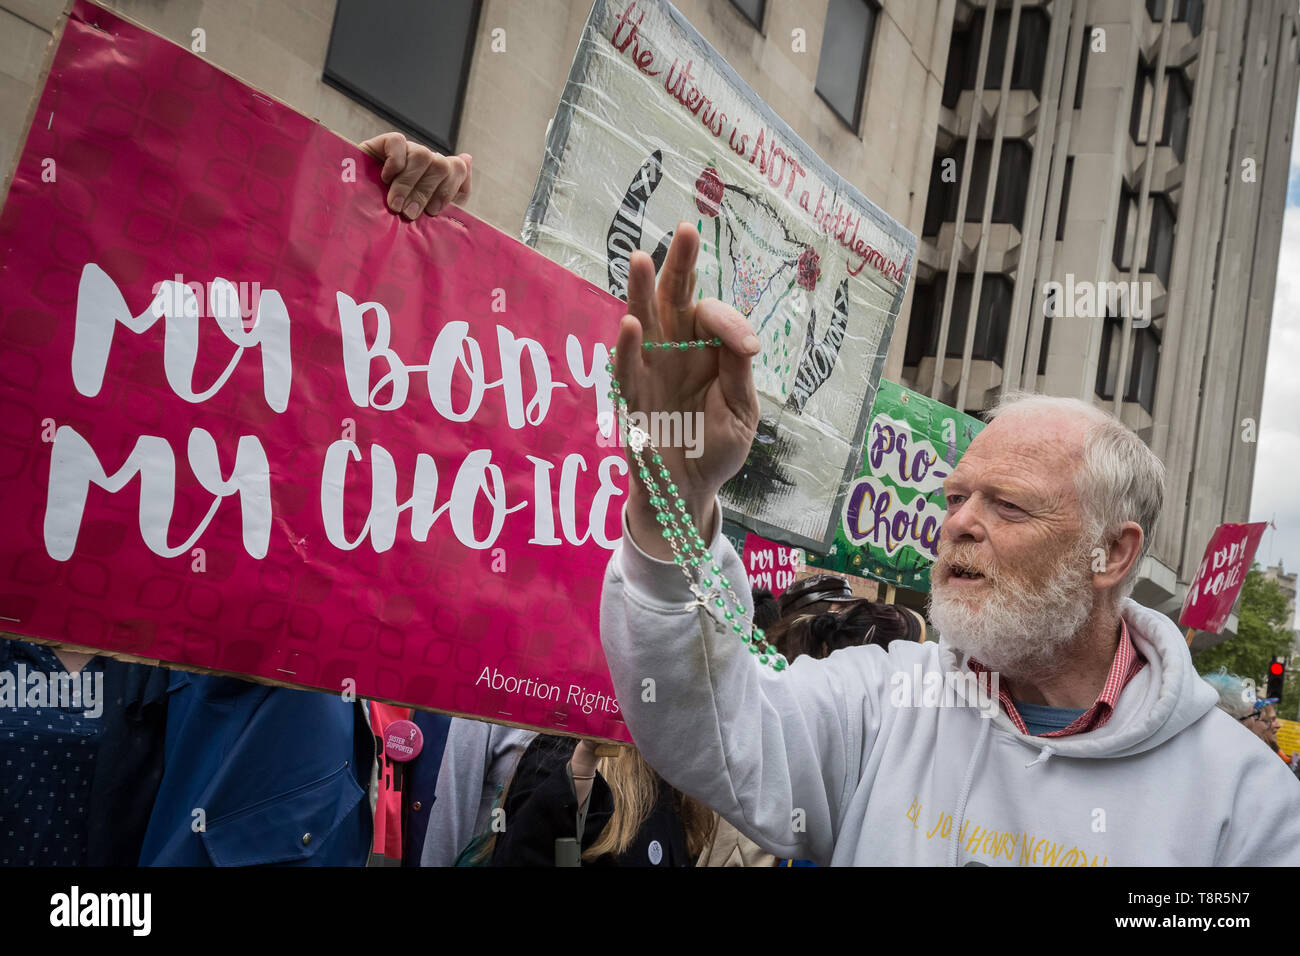 An anti-abortion Christian waves his holy rosaries at women's rights pro-choice supporters as the groups clash during March for Life UK protest. - Stock Image